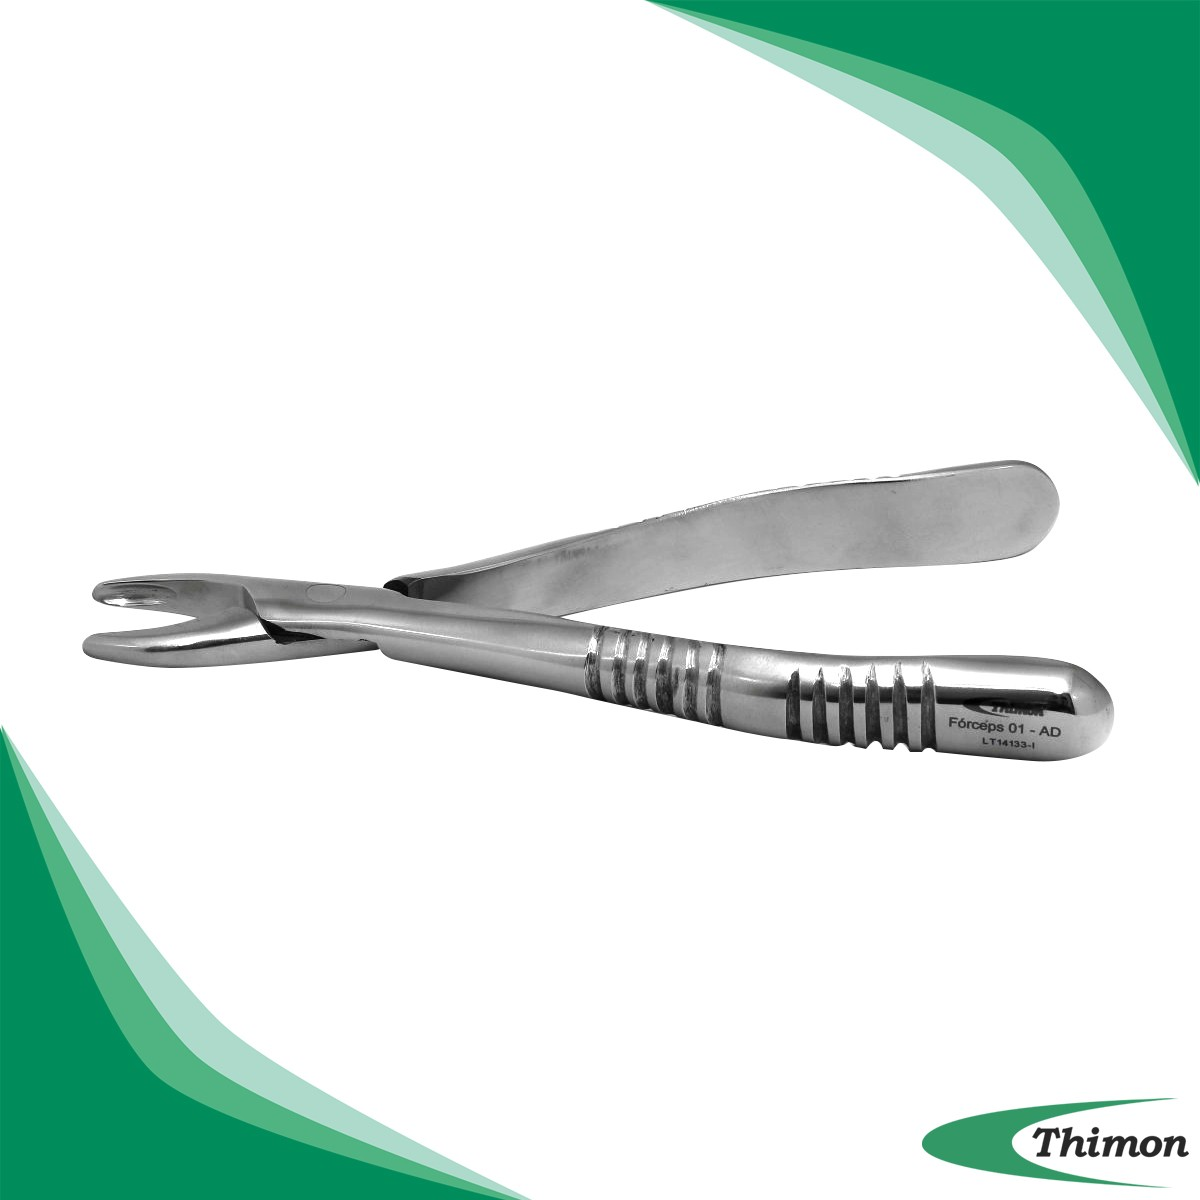 FORCEPS ADULTO N 001 INCISIVOS/CANINOS SUP